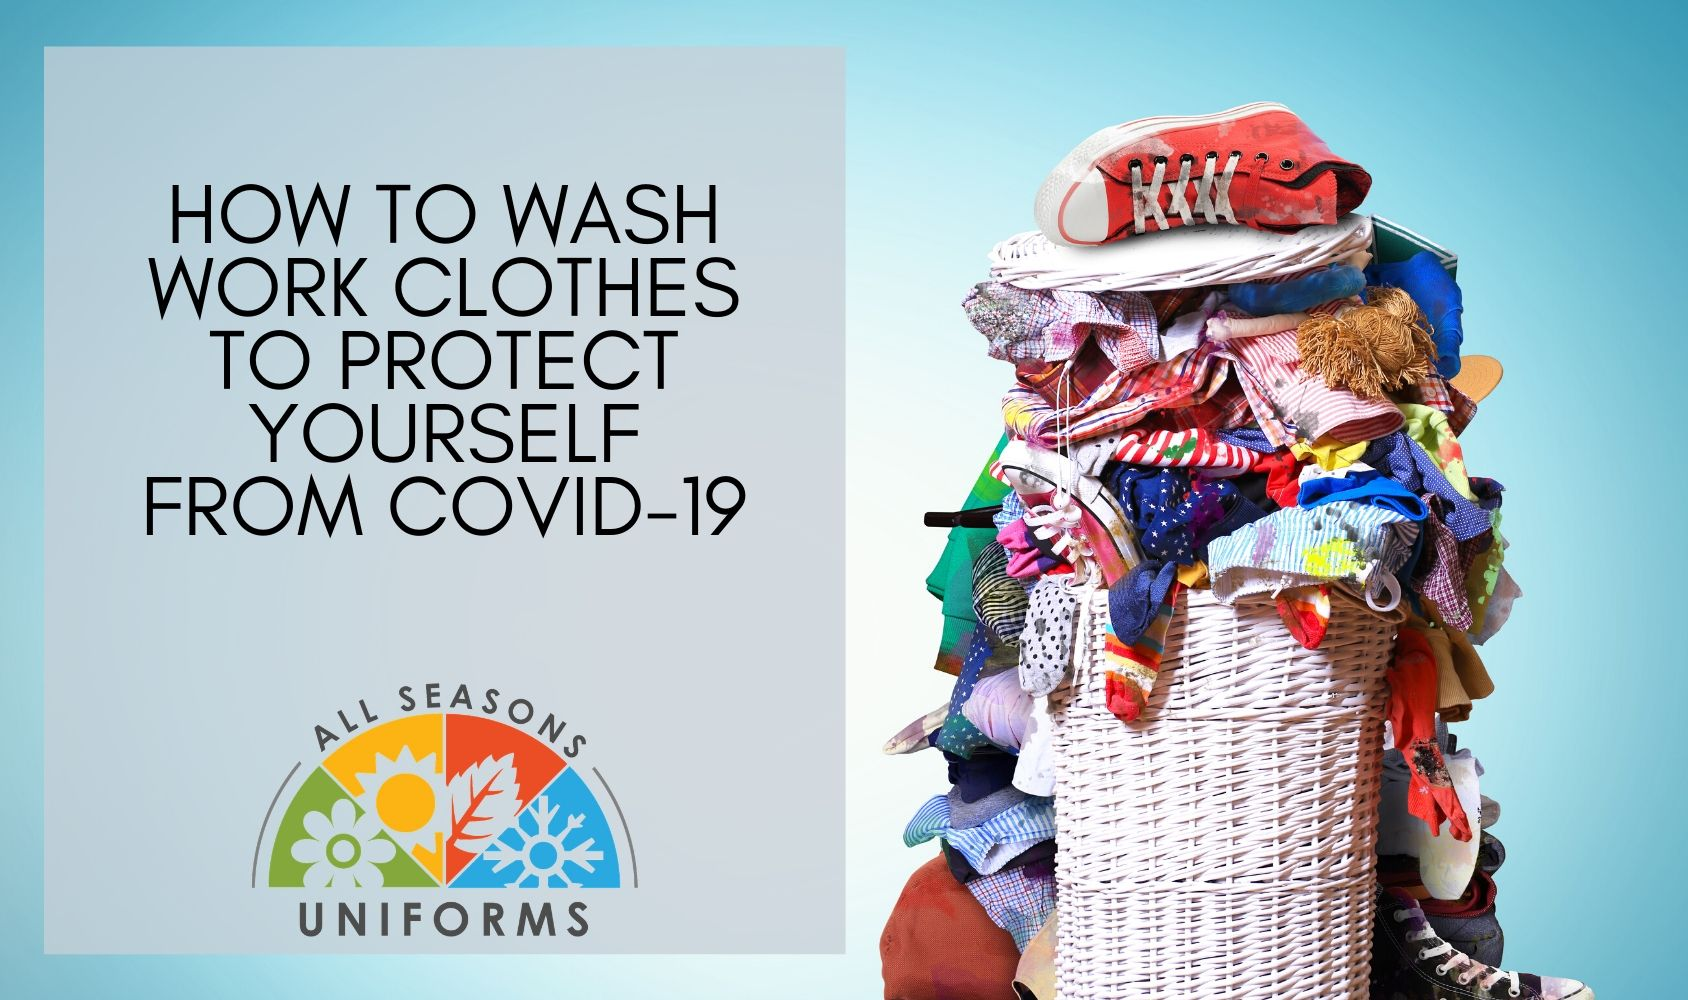 How to Wash Work Clothes to Protect Yourself from COVID-19